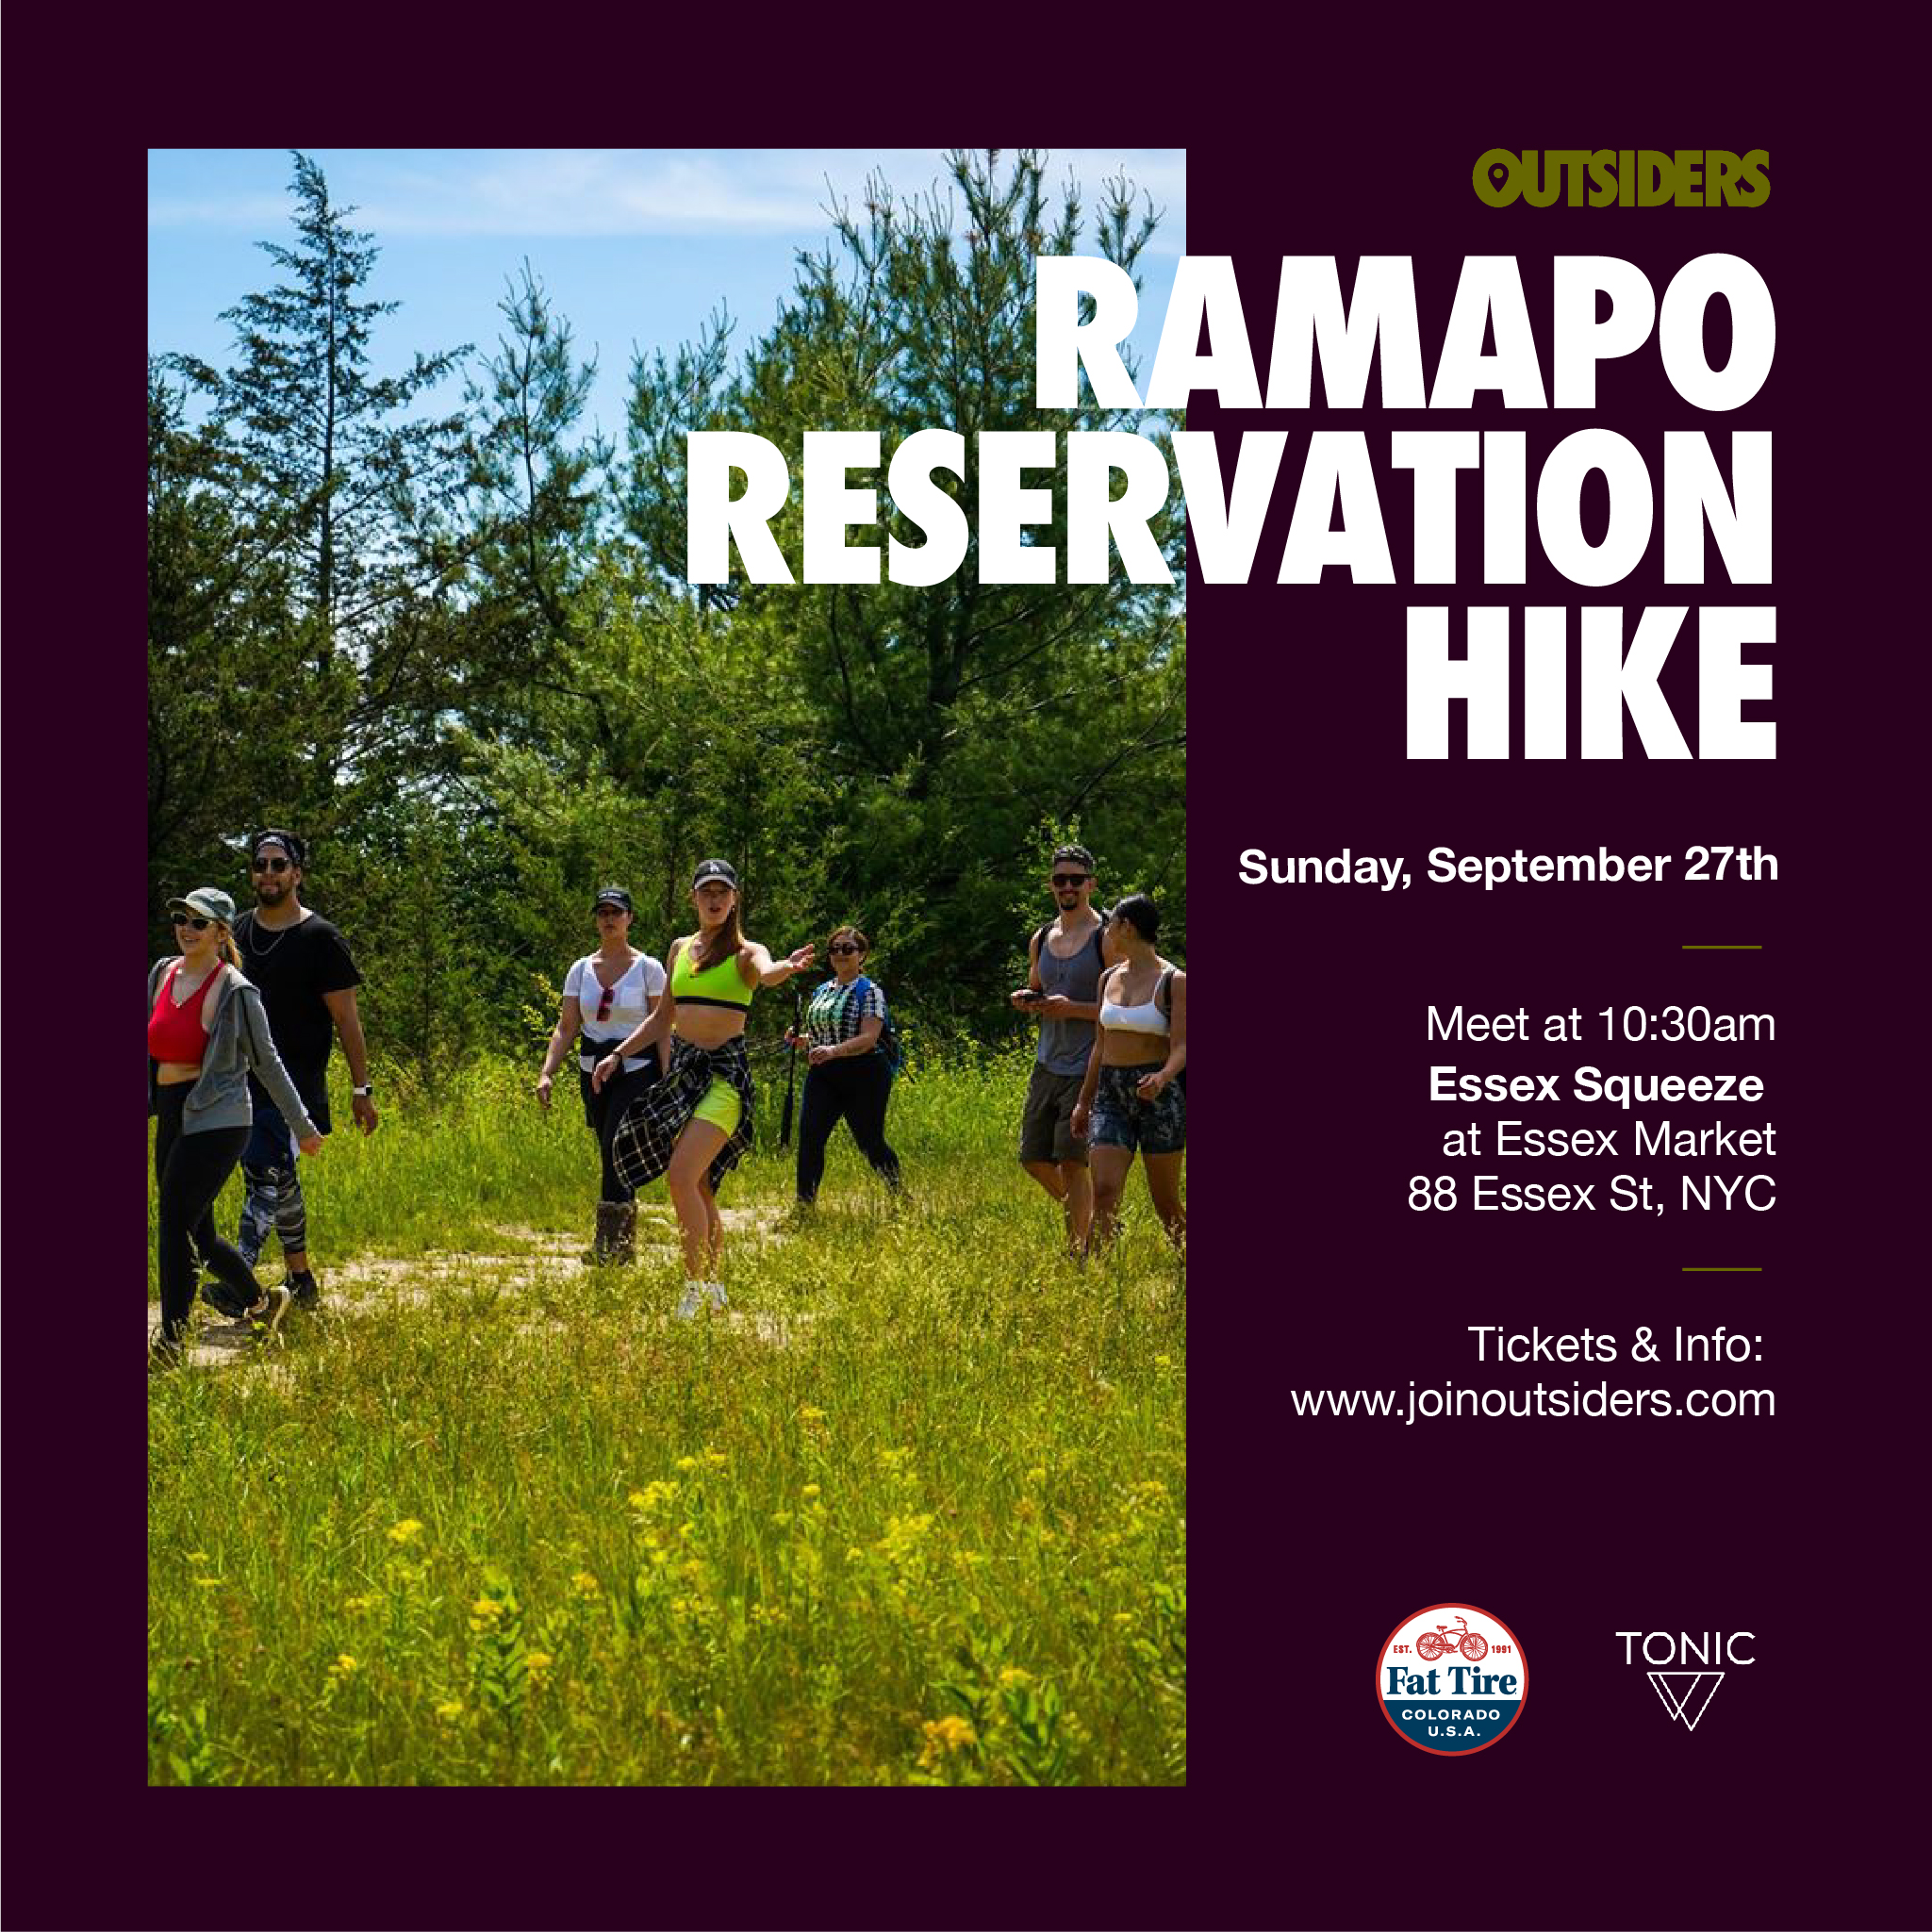 Ramapo Reservation Hike